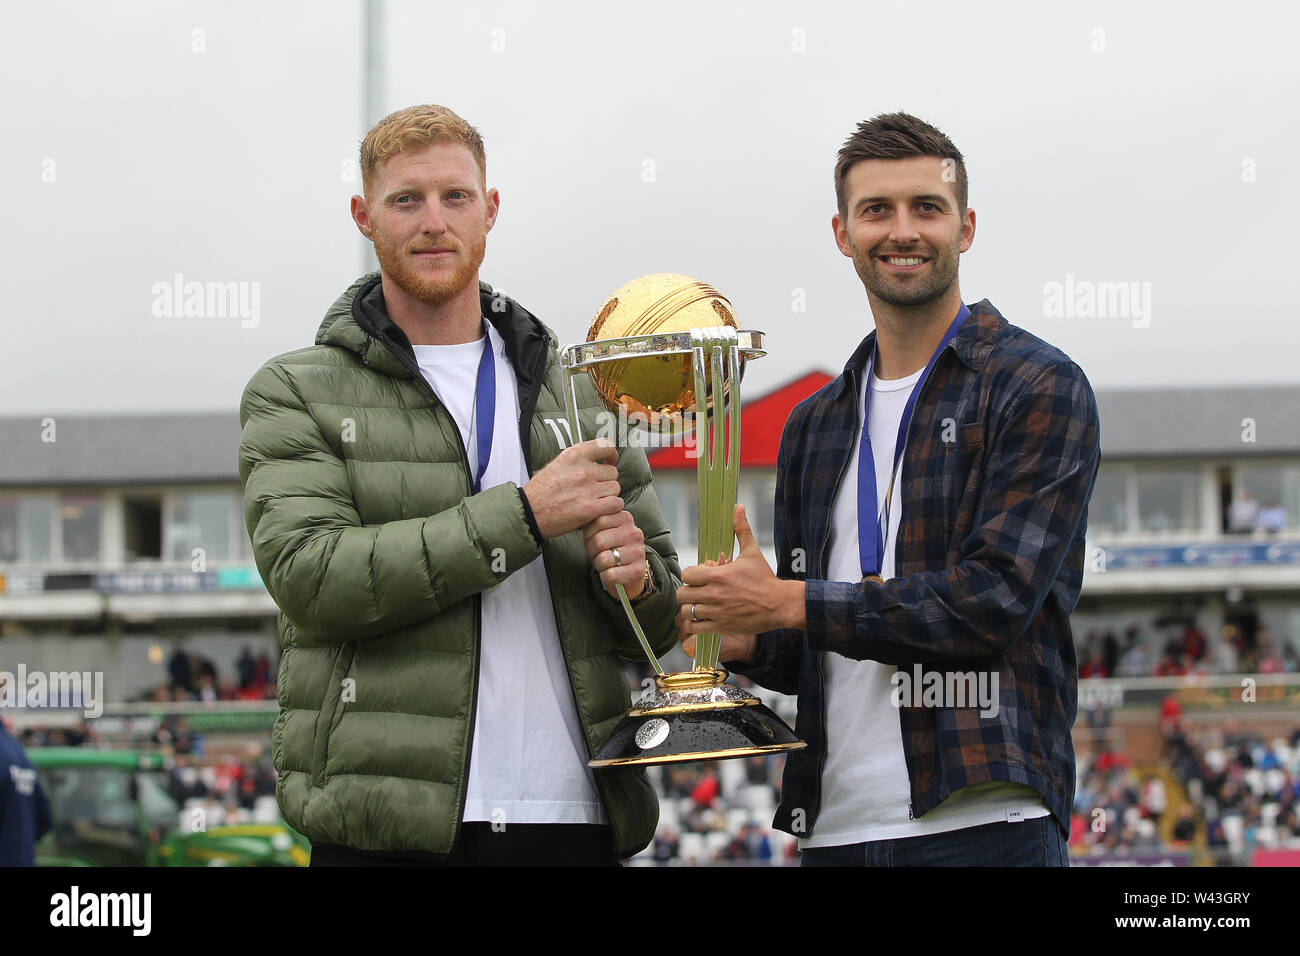 CHESTER LE STREET, ENGLAND 19th July 2019. 2019. England and Durham cricketers Ben Stokes and Mark Wood pose with the Cricket World Cup during the Vitality T20 Blast match between Durham County Cricket Club and Northamptonshire County Cricket Club at Emirates Riverside, Chester le Street on Friday 19th July 2019. (Credit: Mark Fletcher   MI News ) Credit: MI News & Sport /Alamy Live News - Stock Image